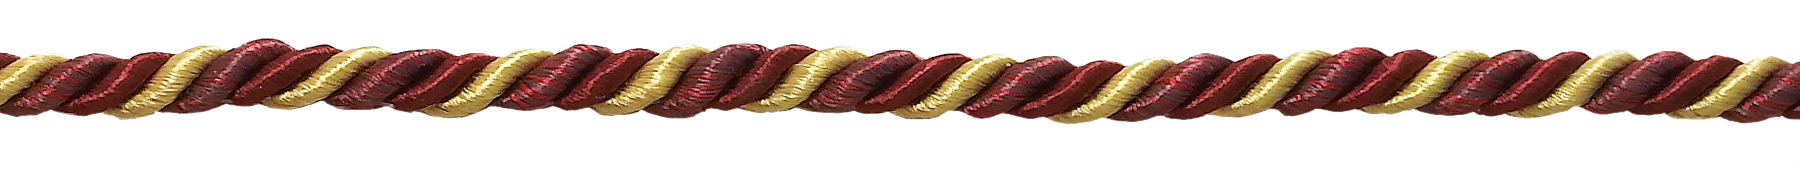 CRANBERRY HARVEST Small Burgundy Taupe Baroque Collection 3//16 Decorative Cord Without Lip Style# 316BNL Color 8612 Sold by The Yard